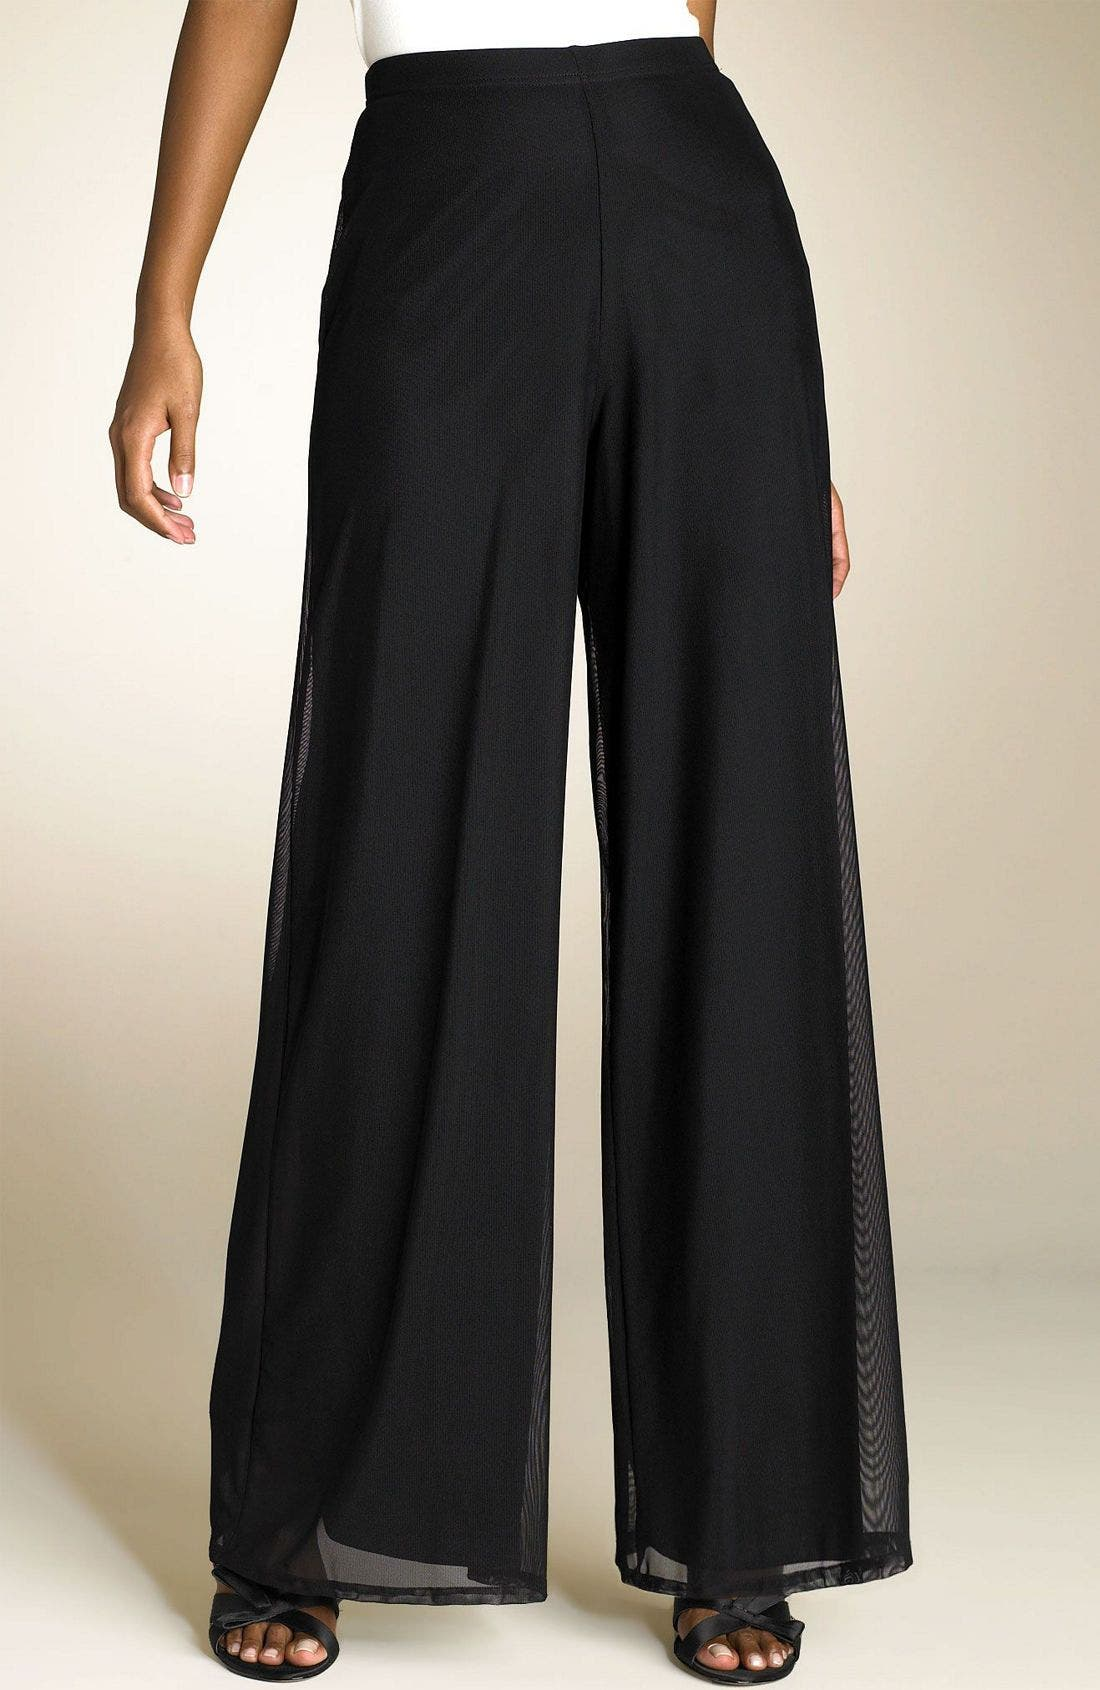 Alternate Image 1 Selected - Tadashi Shoji Stretch Mesh Pants